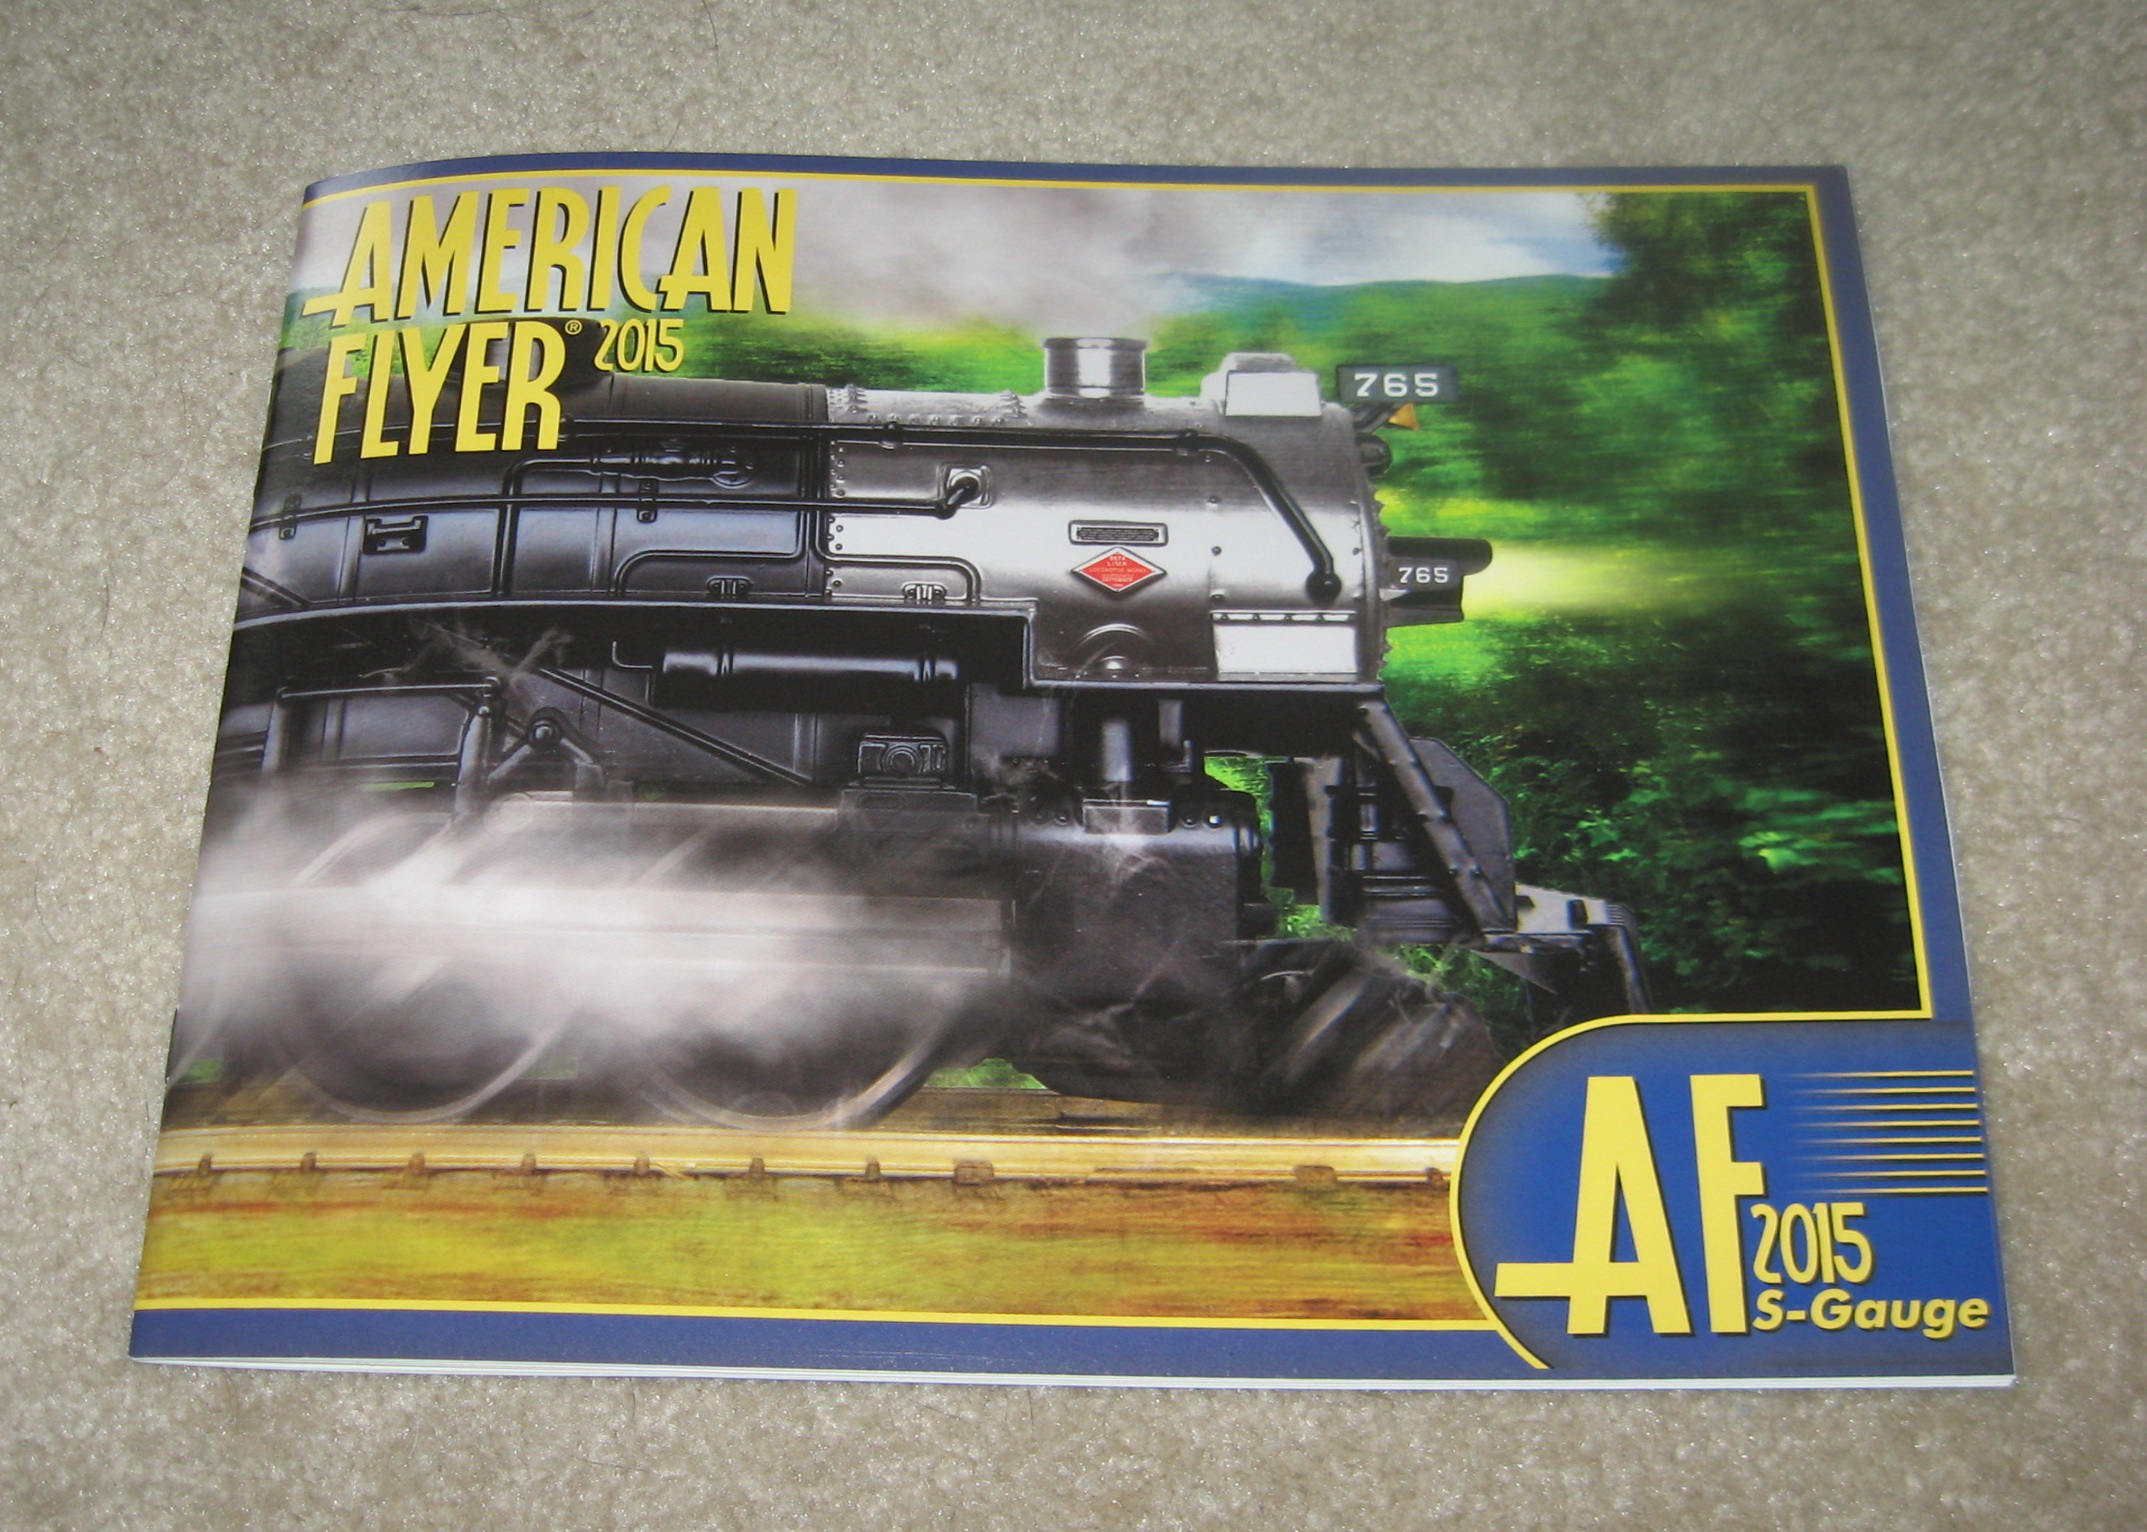 2015 Lionel American Flyer Trains Catalog. Mint Condition.